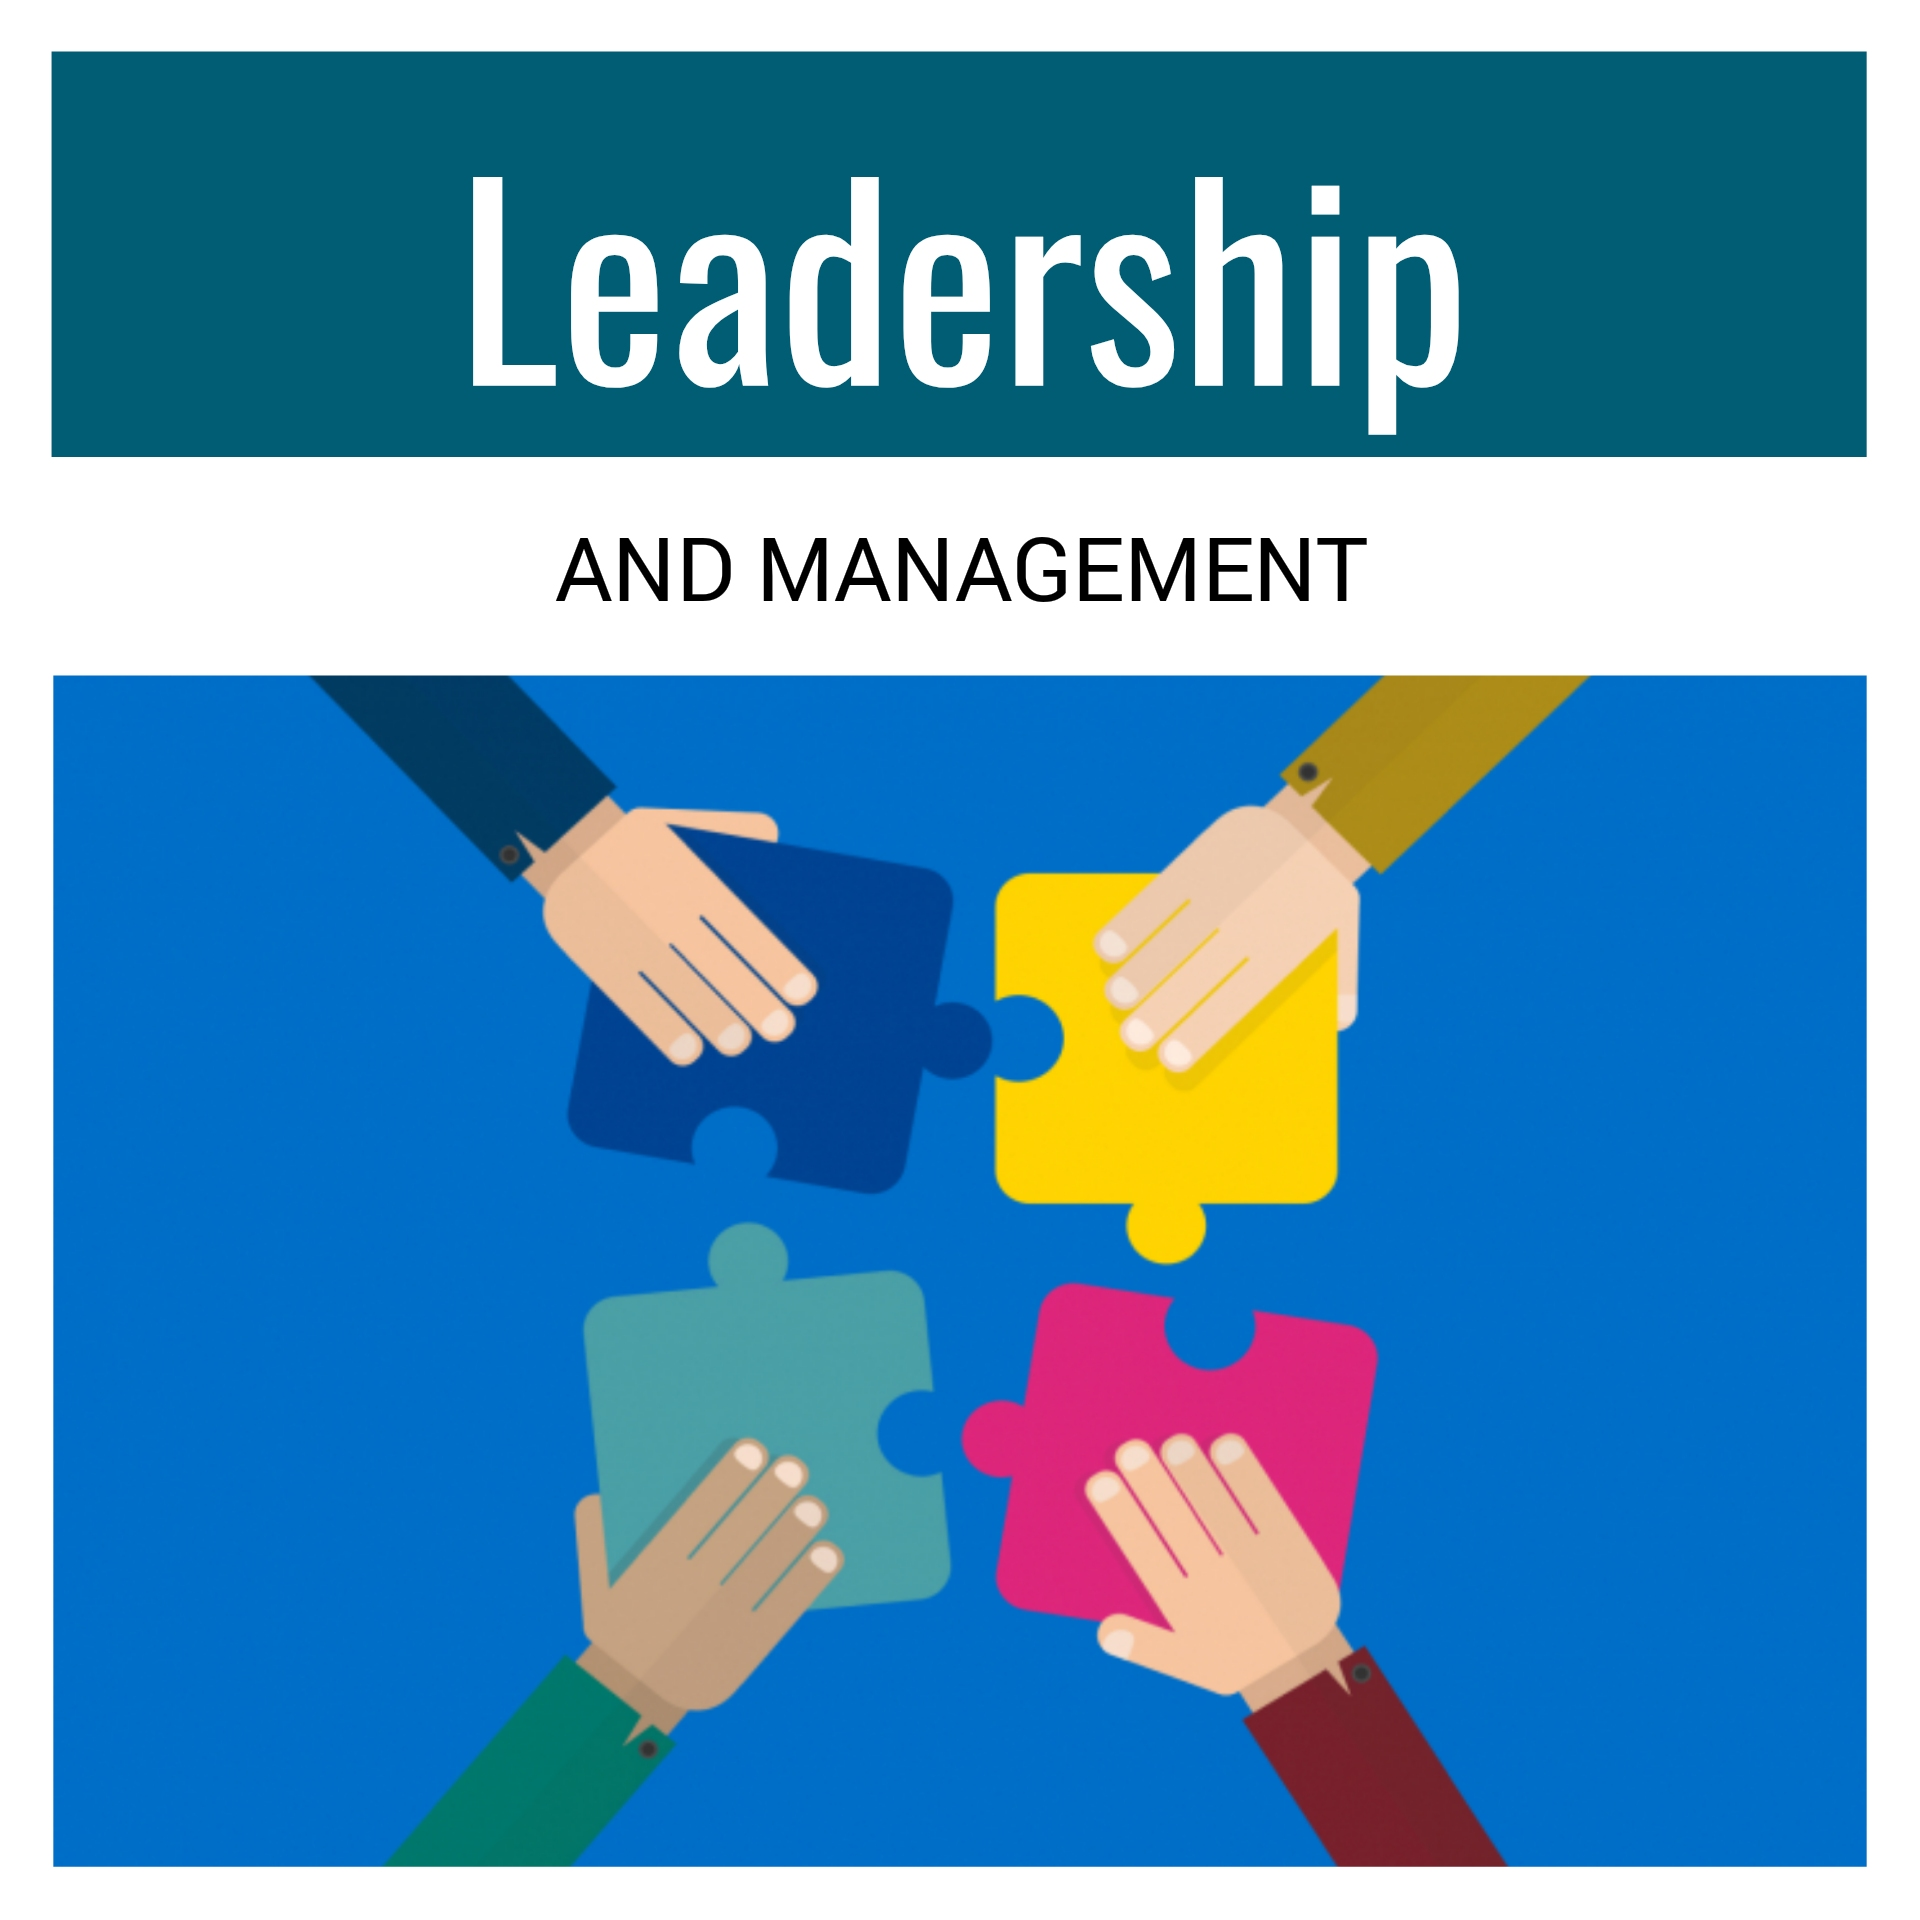 Leadership And Management 1A 2020-2021